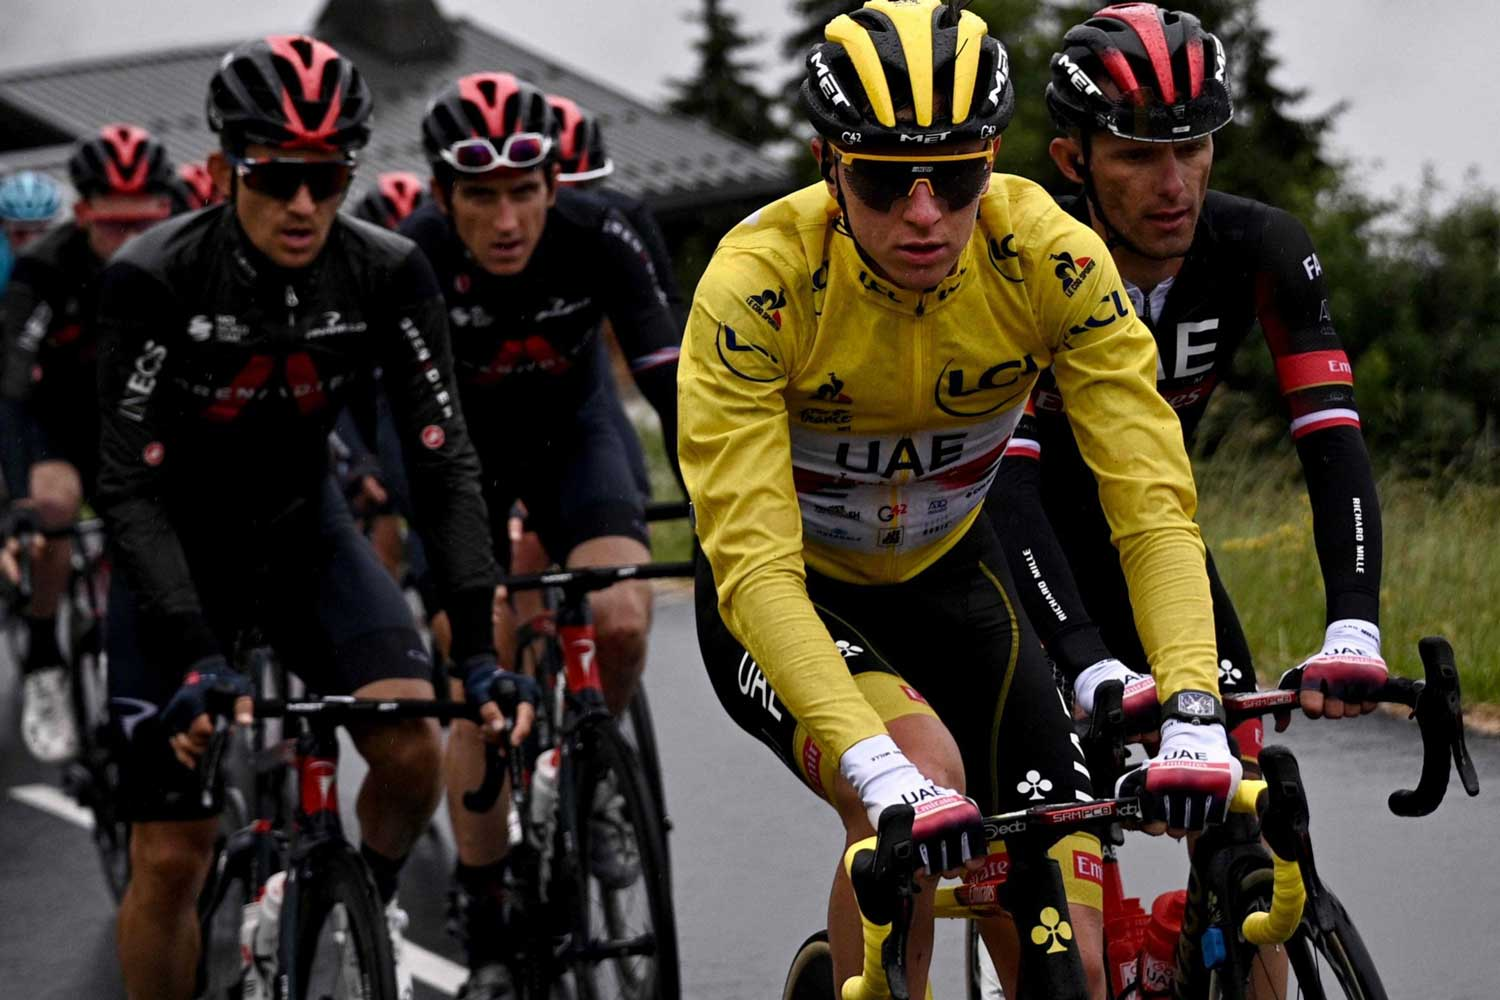 UAE cyclist, Tadej Pogačar w,inner of Tour de France 2020, leading out in front in yellow at Tour de France 2021 (Image: Getty)